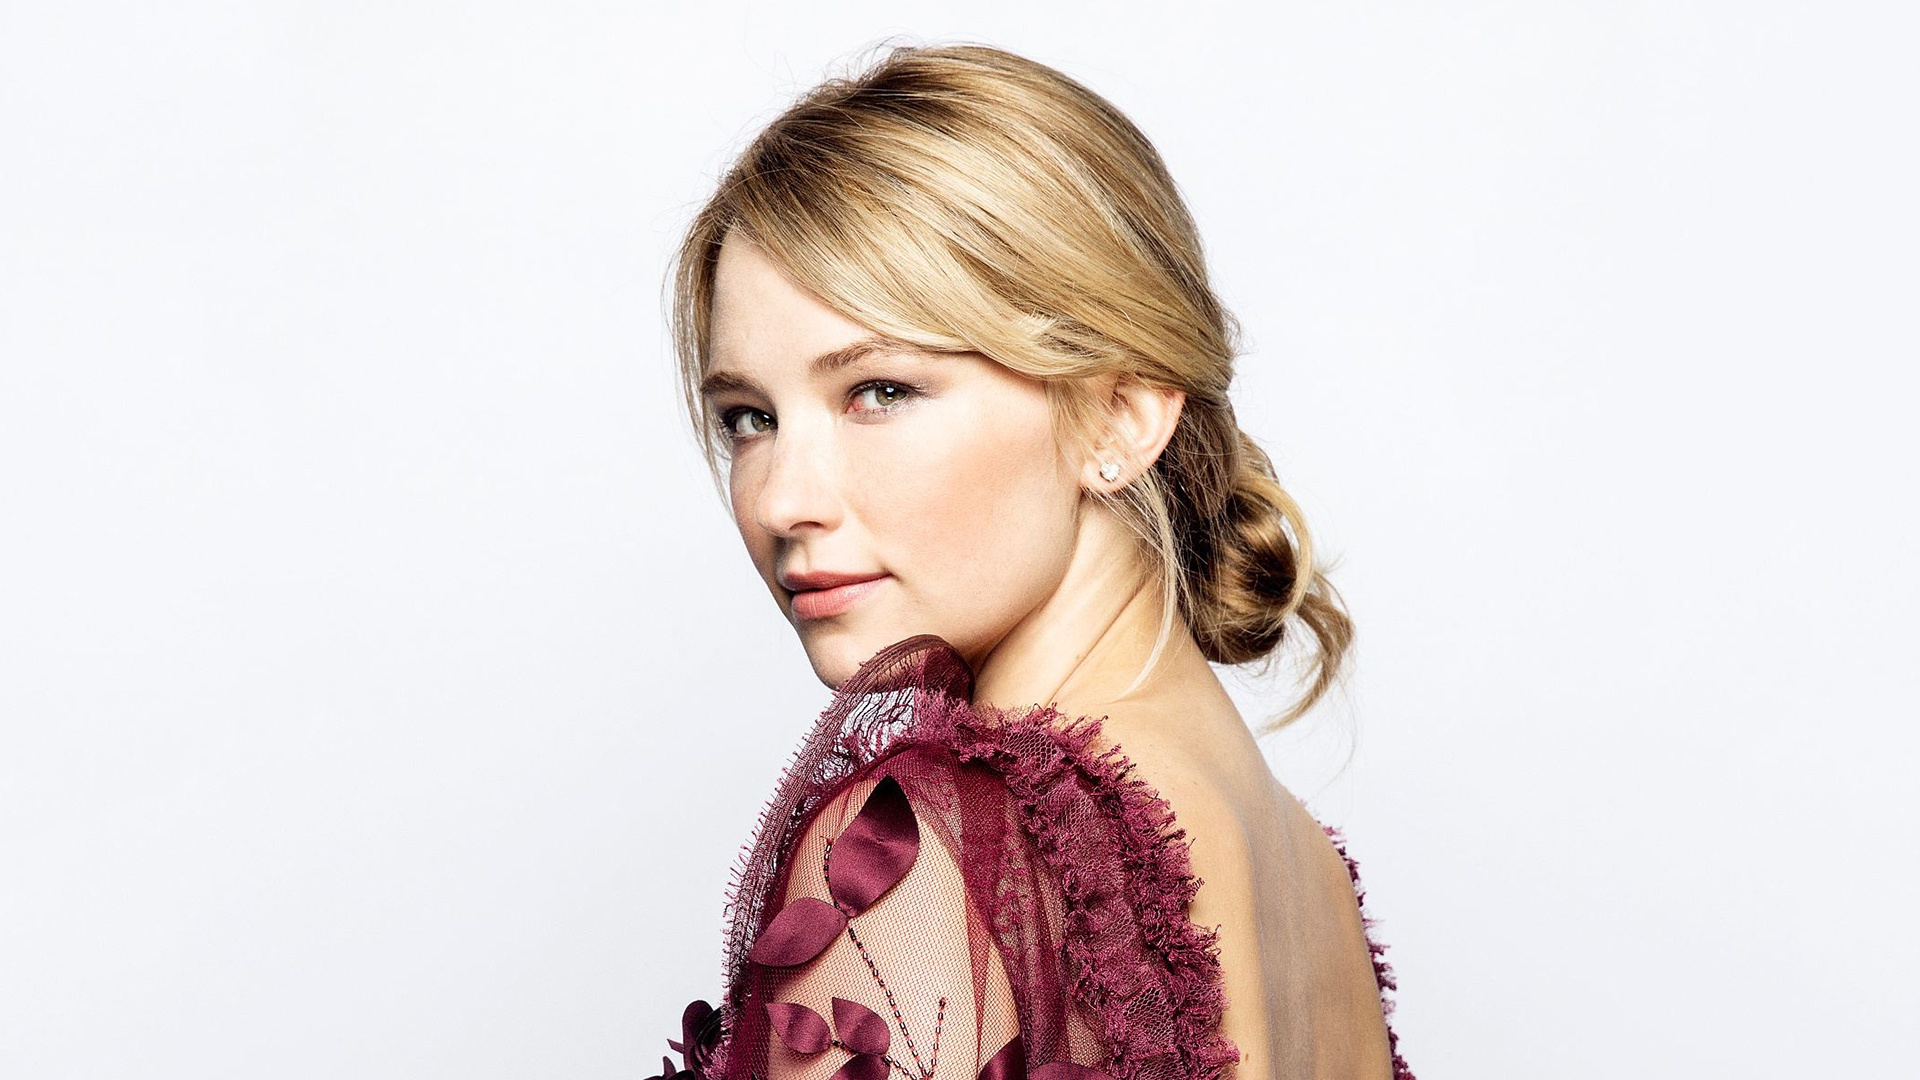 Haley Bennett Wallpapers Images Photos Pictures Backgrounds 1920x1080